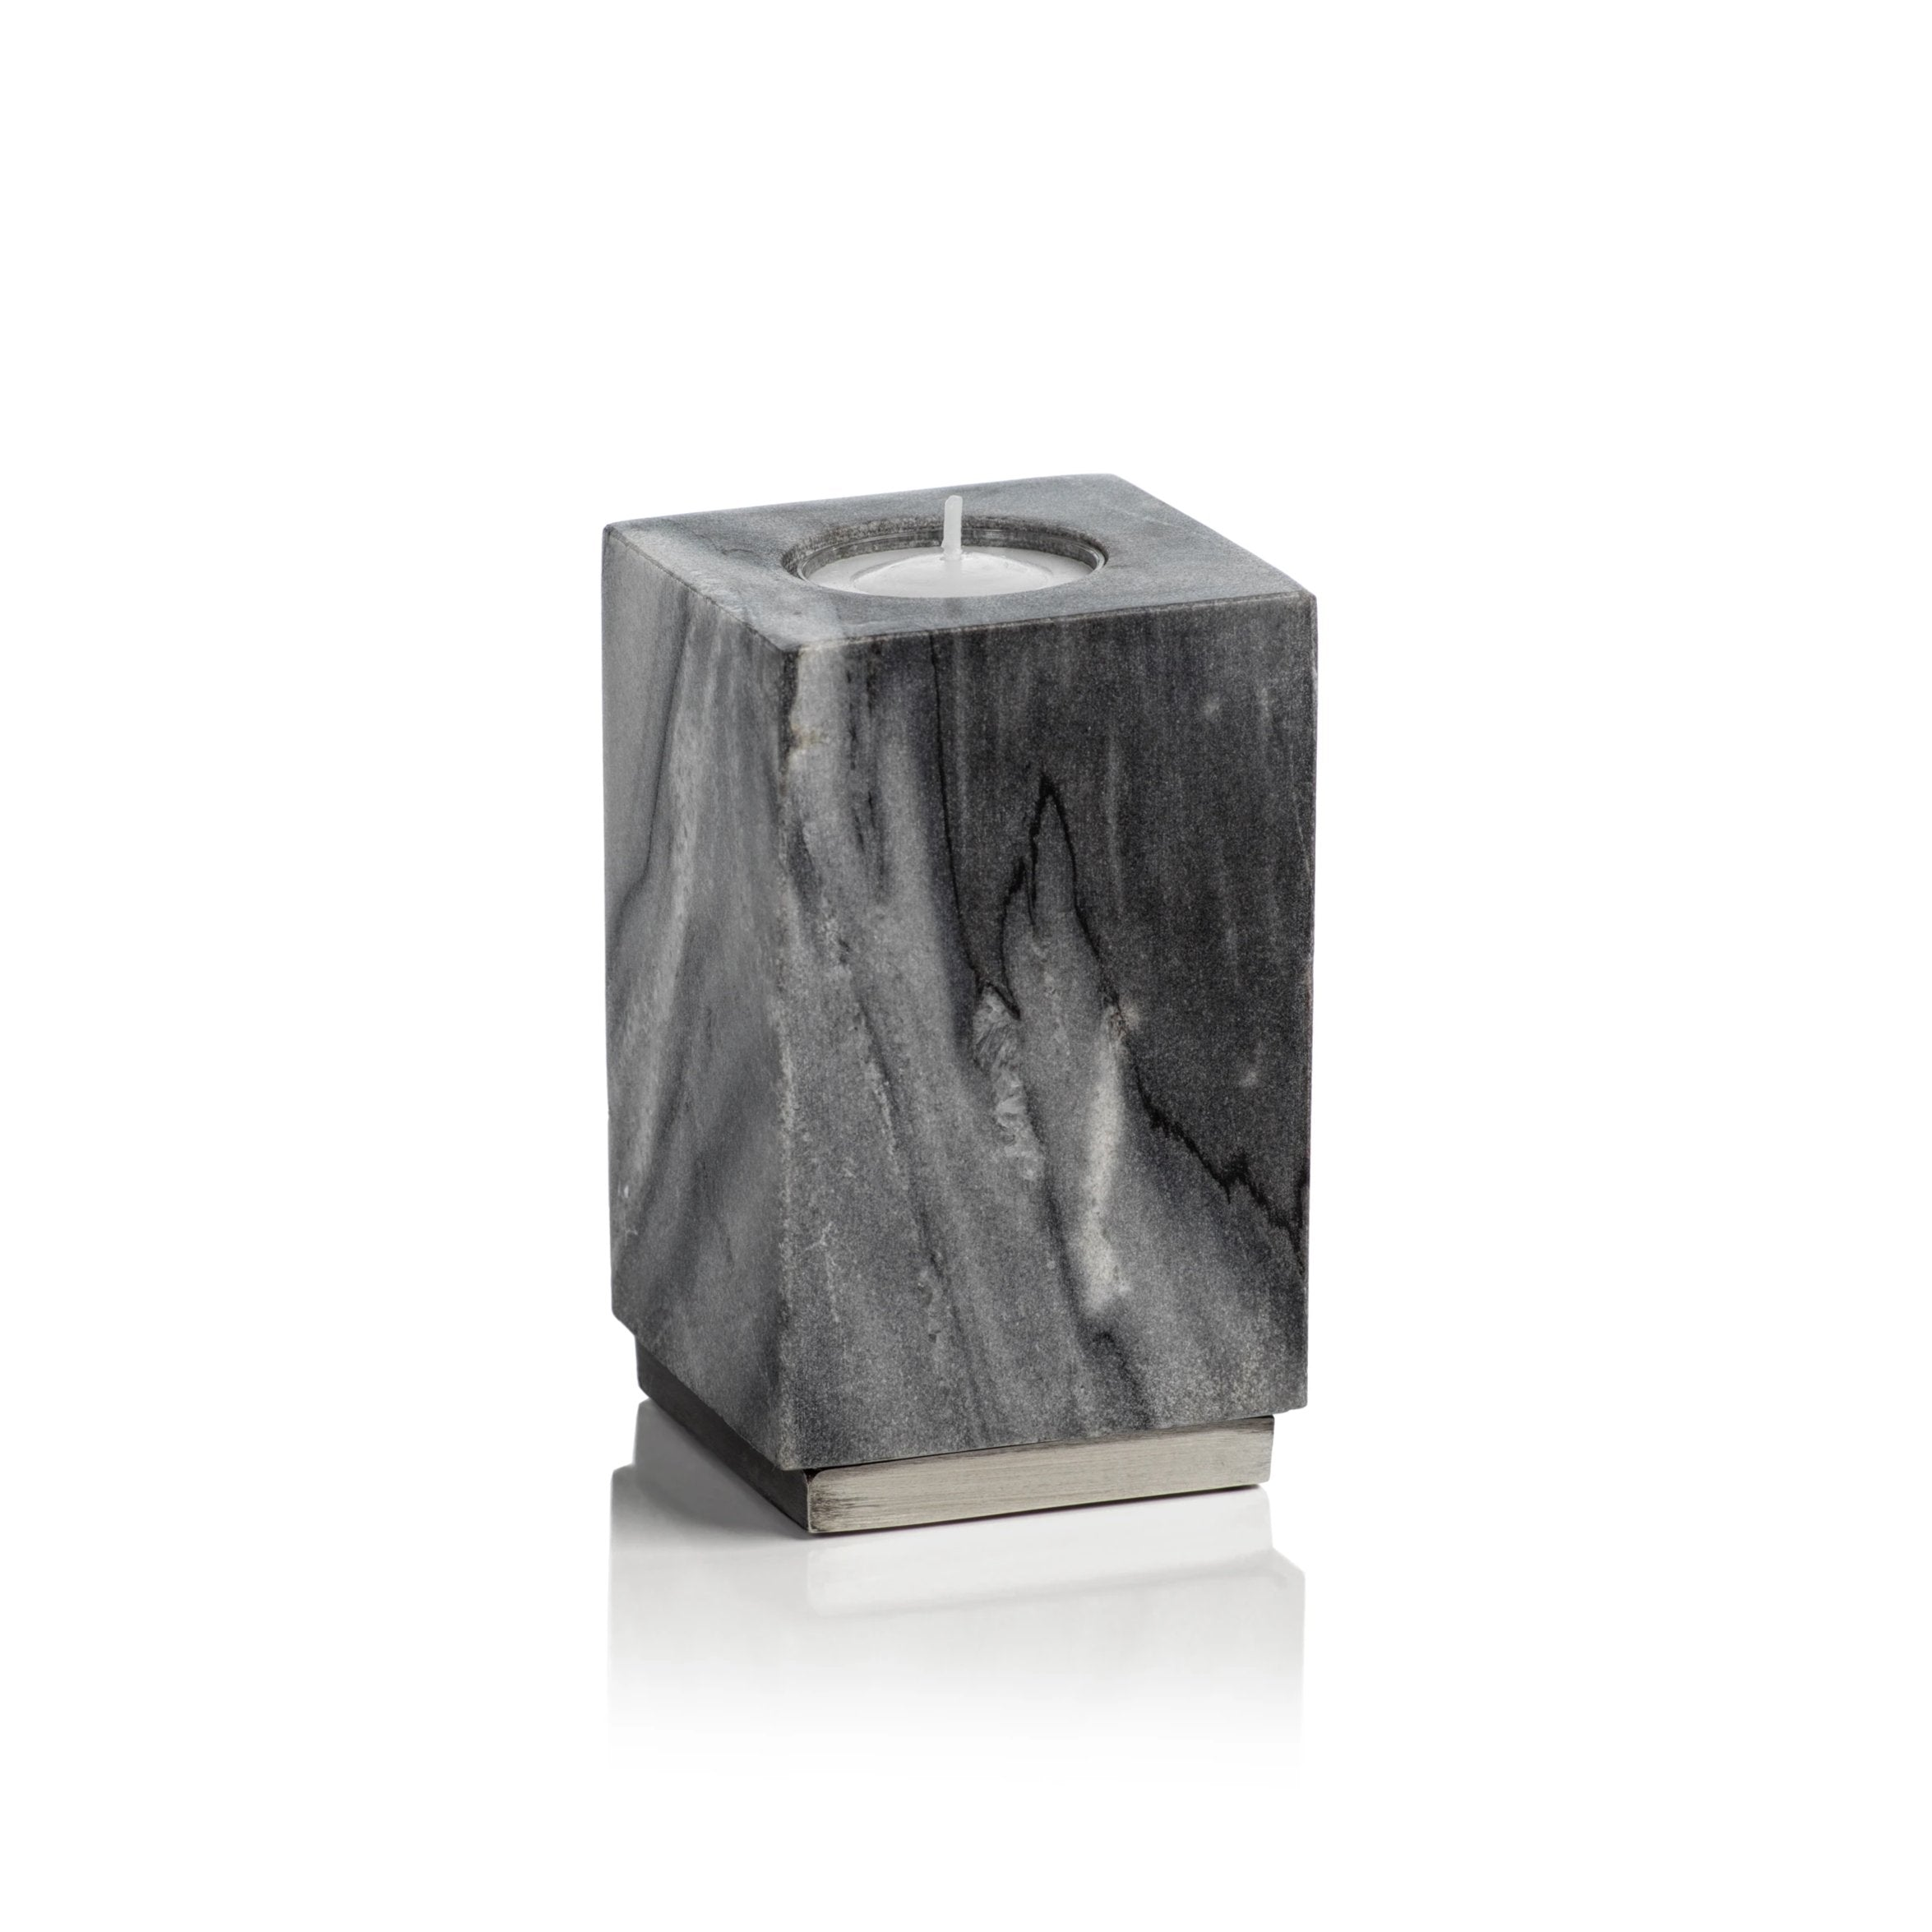 Tuscan Gray Marble Tealight Holder on Nickel Base - CARLYLE AVENUE